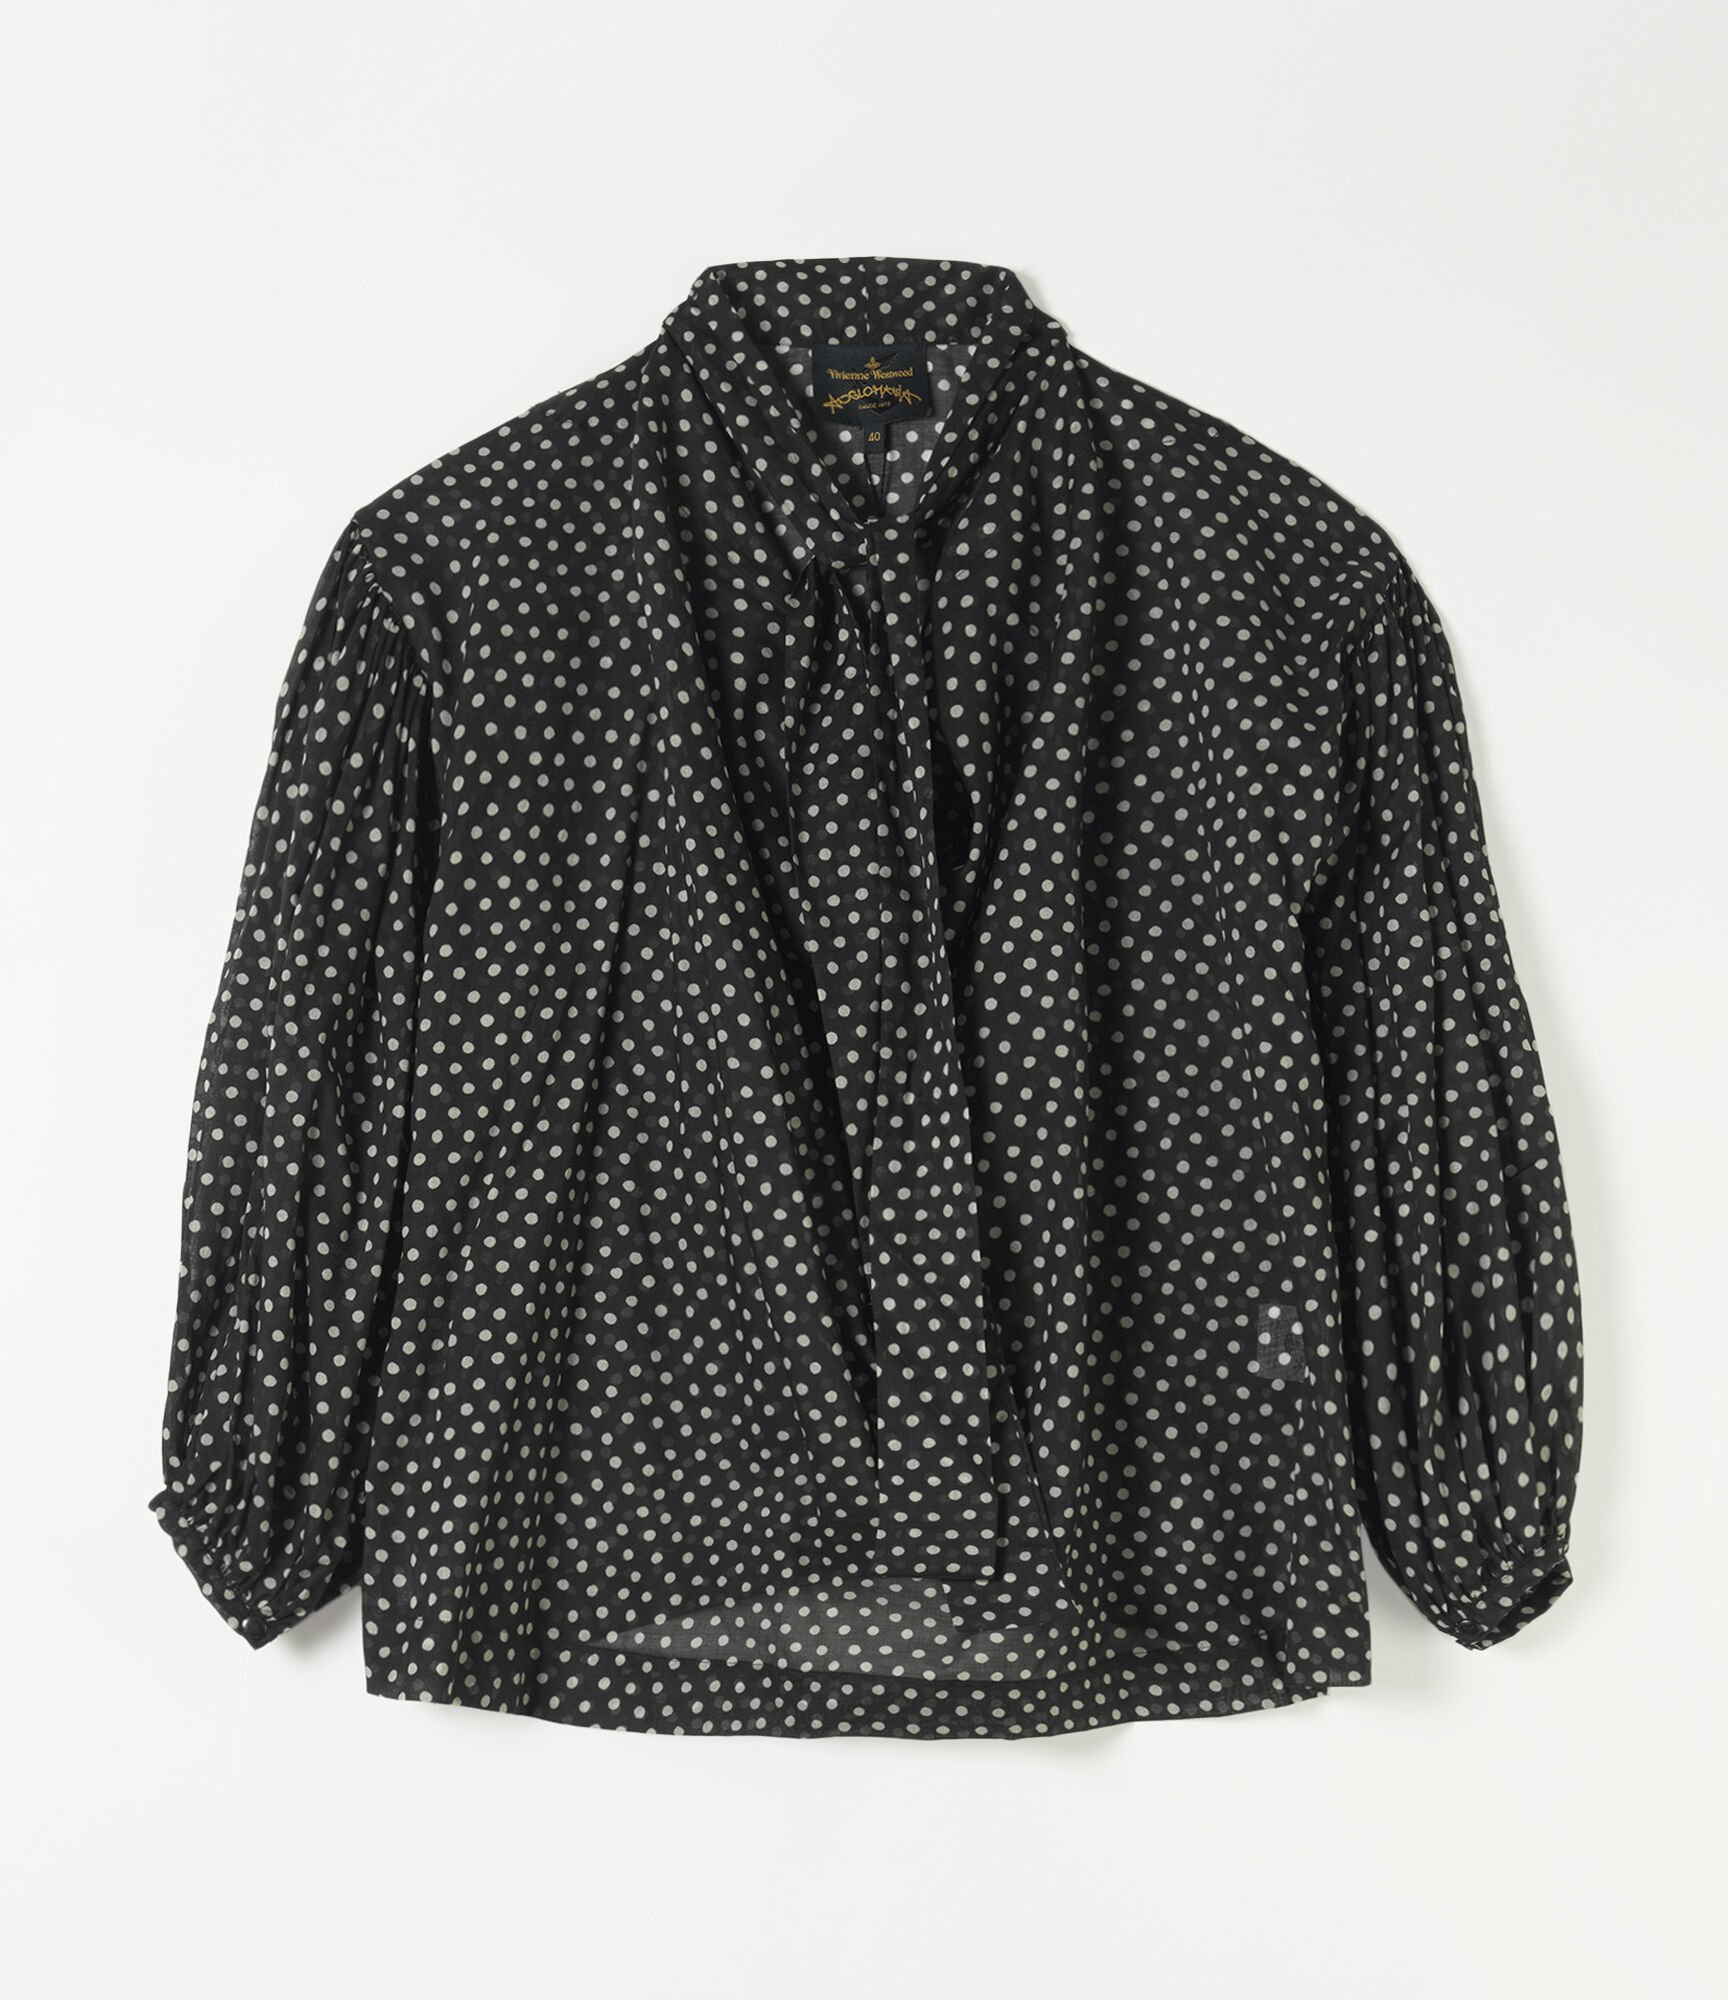 Vivienne Westwood New Garret Blouse Black/White